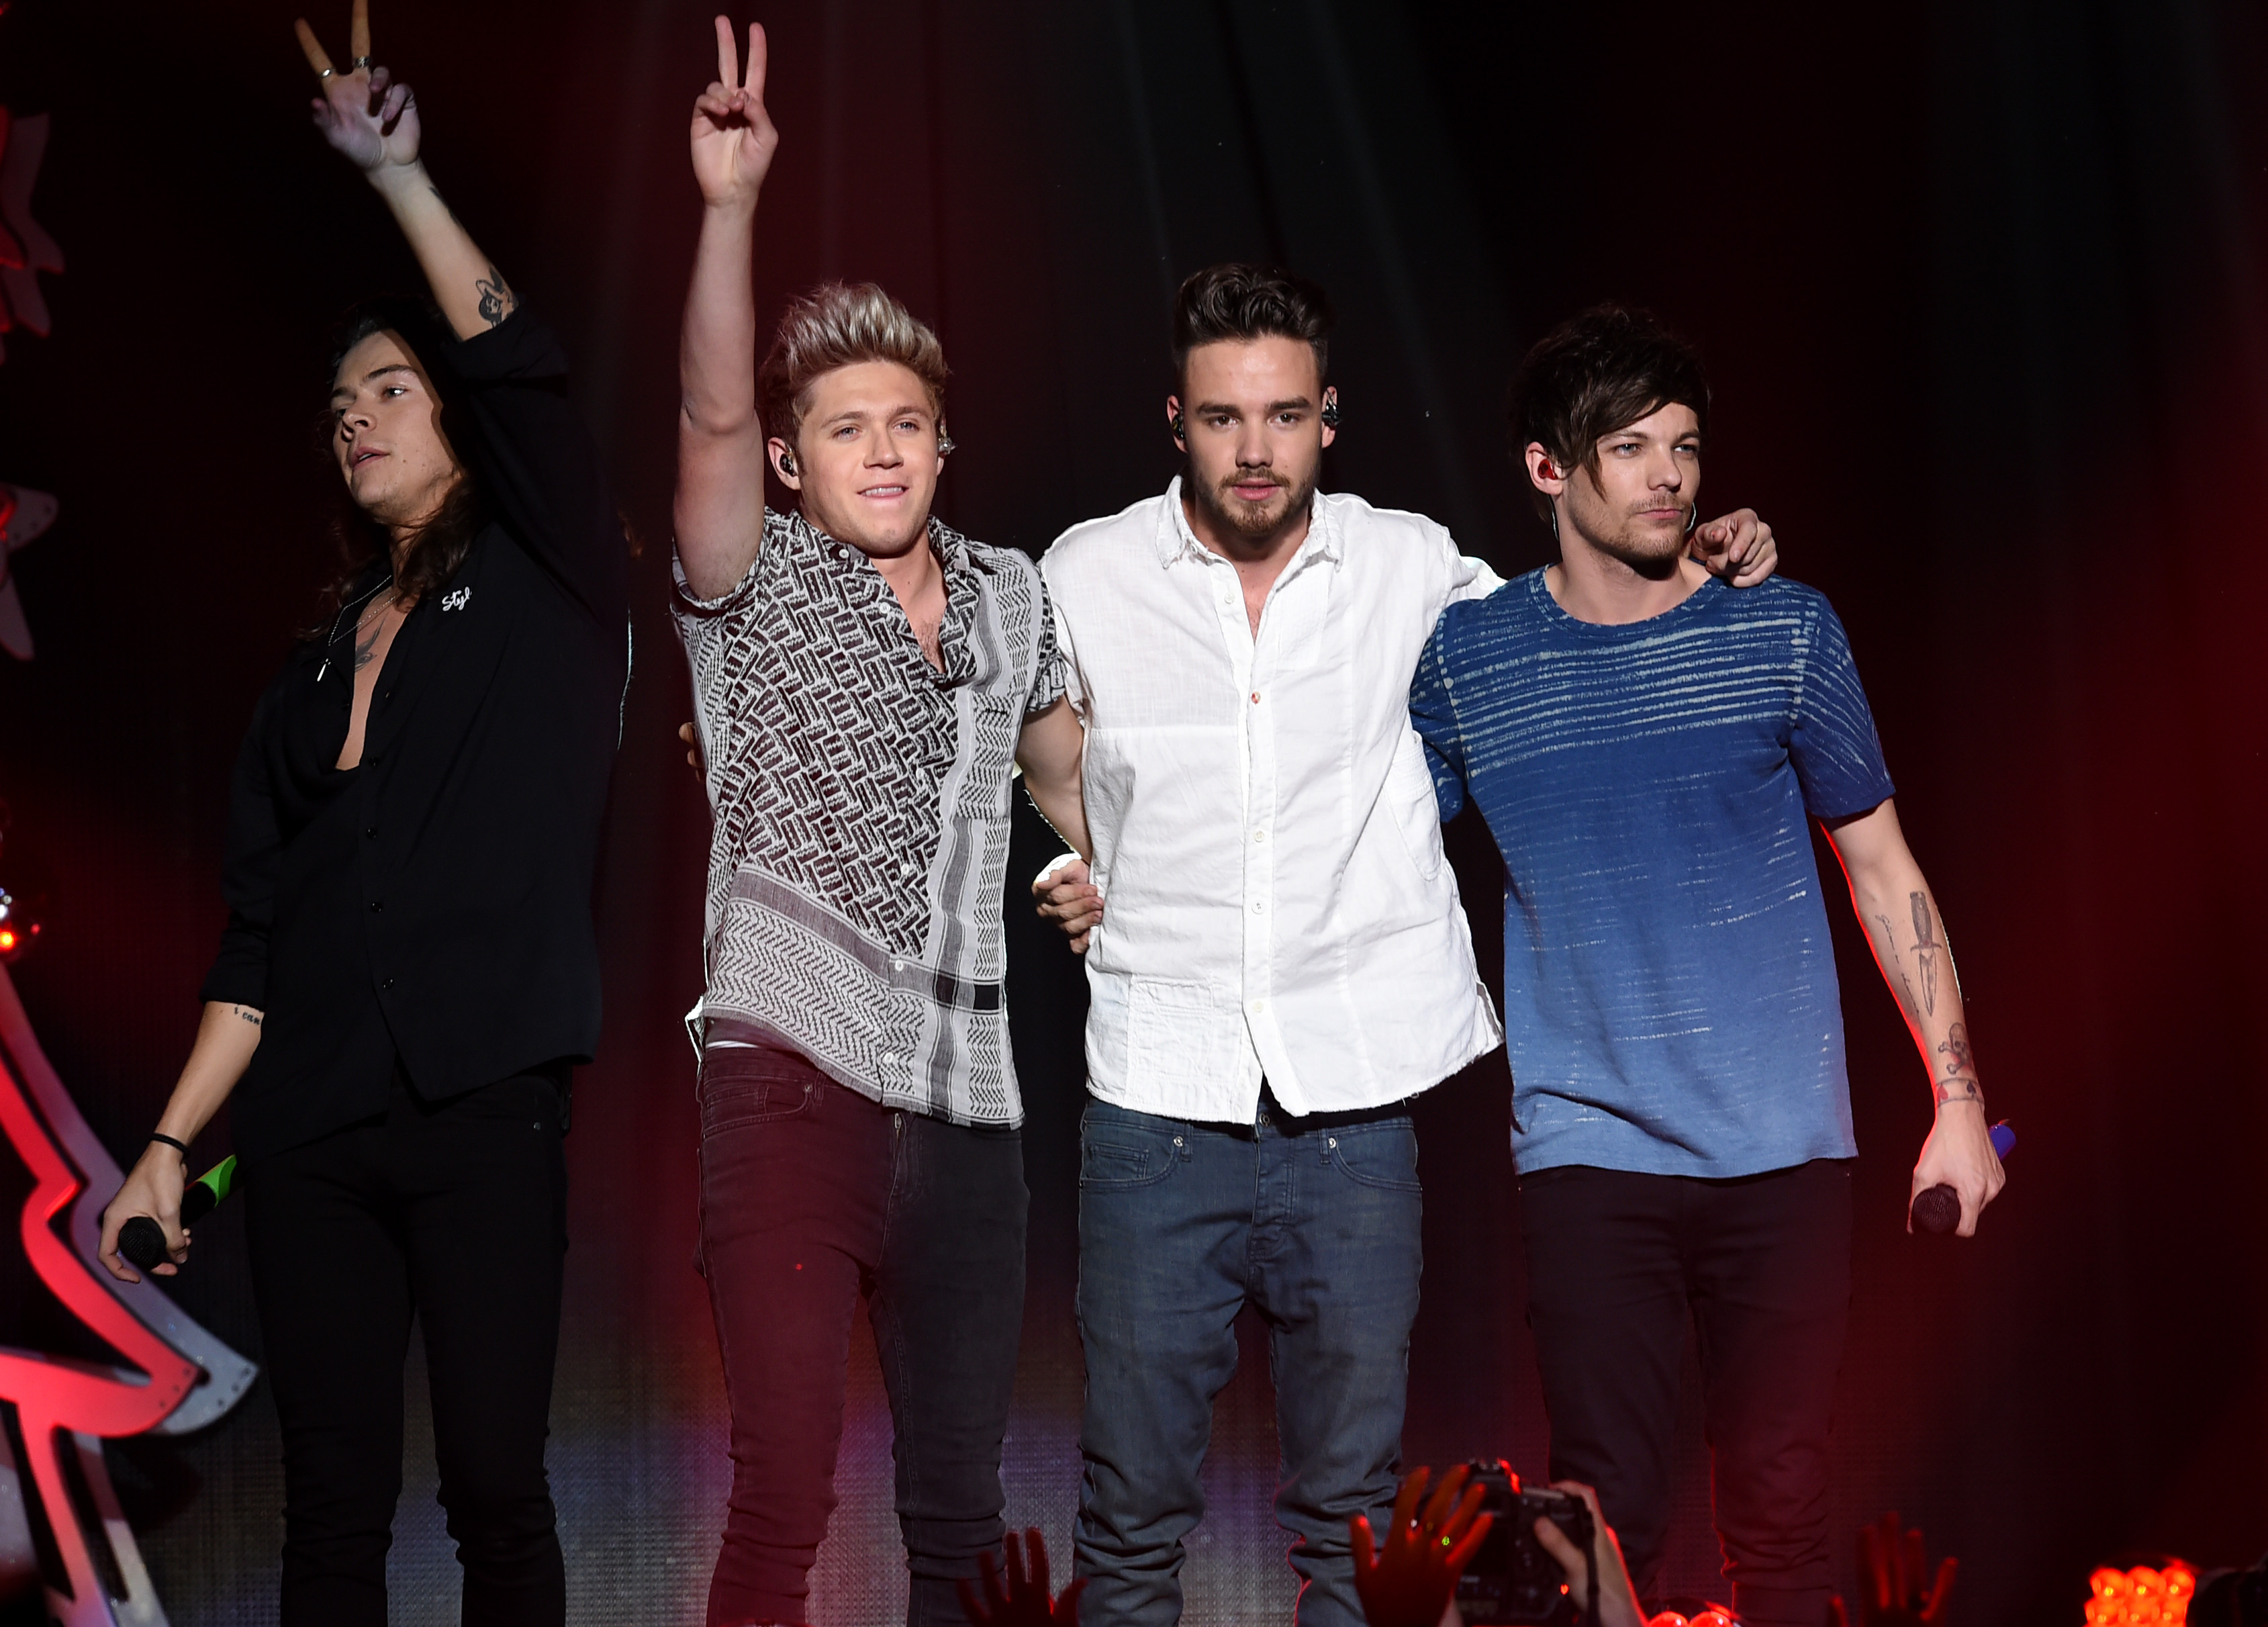 One Direction at 102.7 KIIS FM's Jingle Ball - Sho